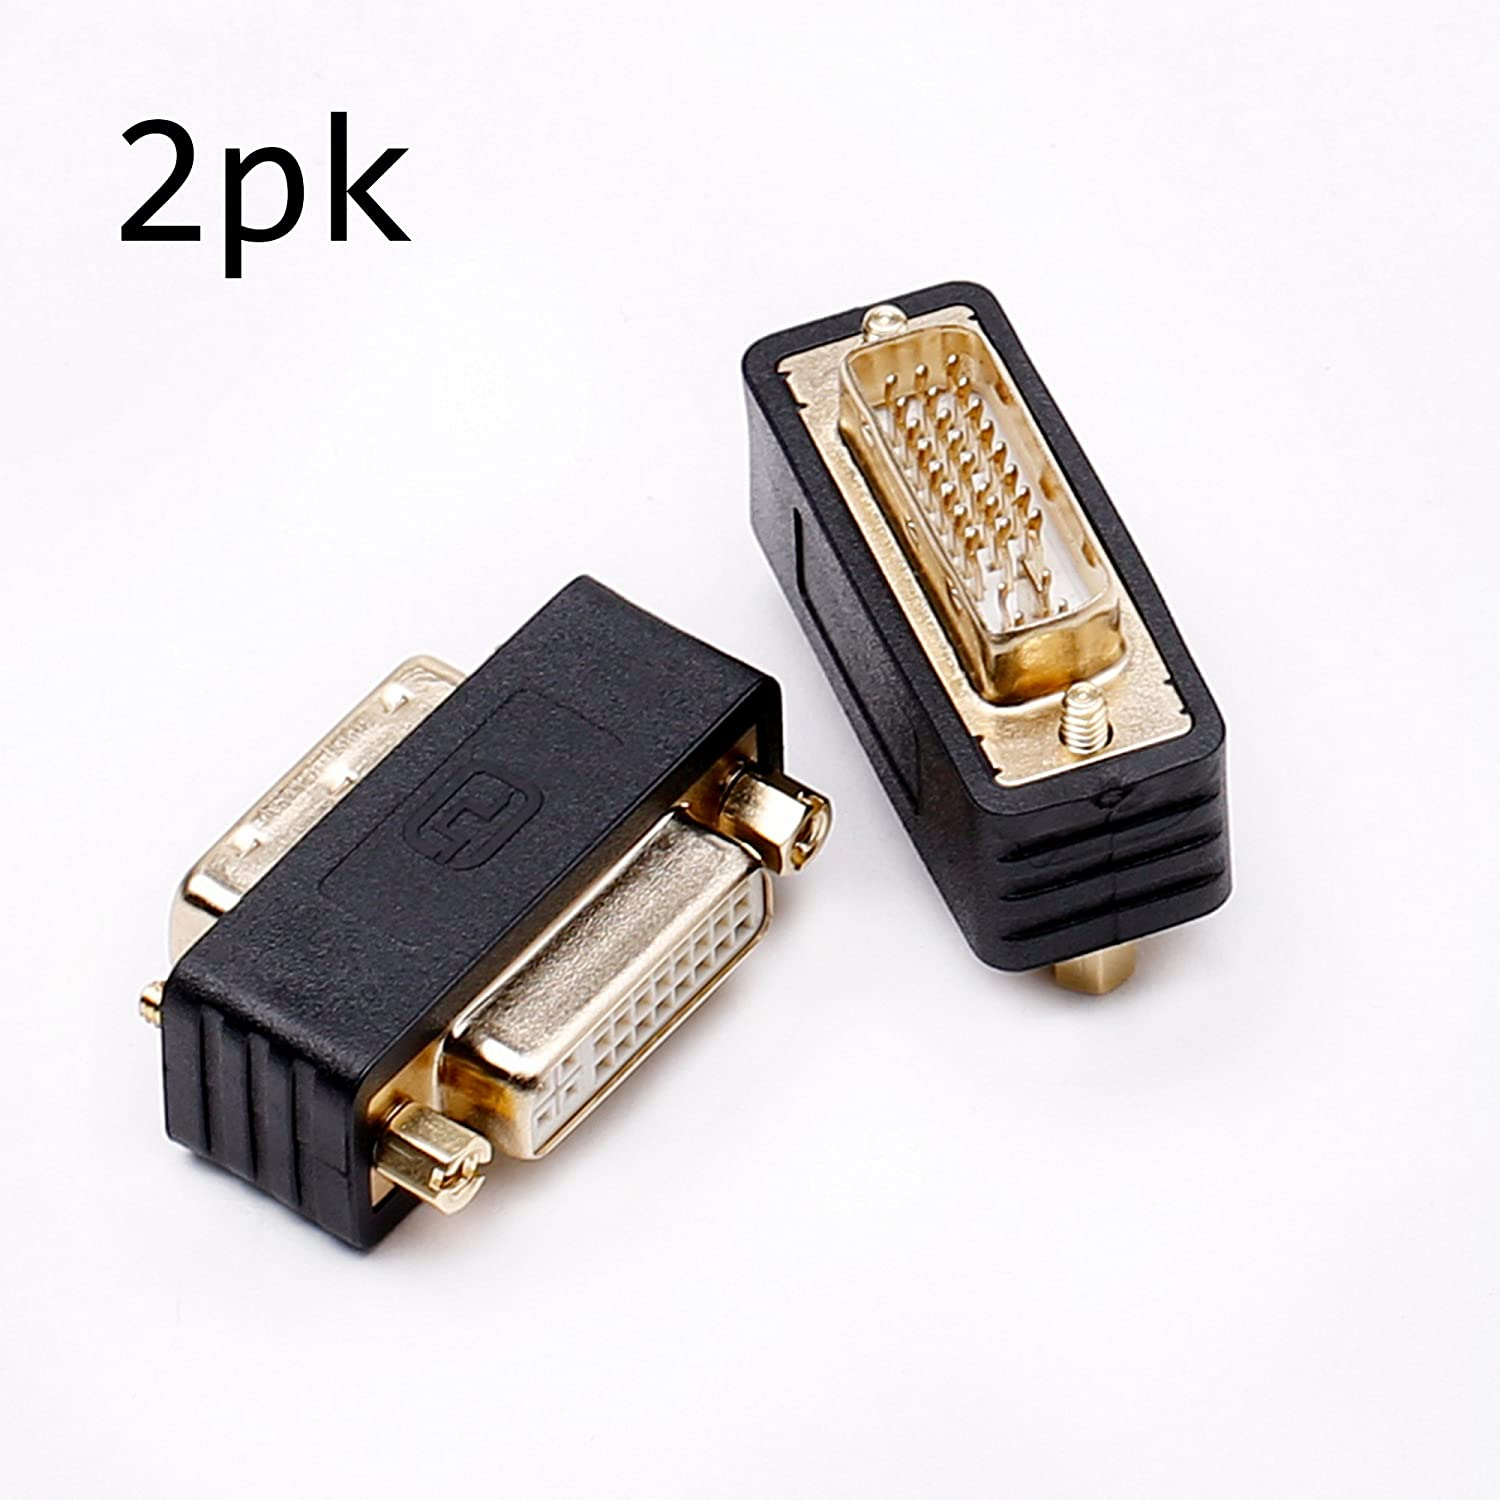 DVI coupler female to female gender changer bulkhead mount adapter (black gold plated) 2 Pack JIACHEN KADVDV0001-G-2